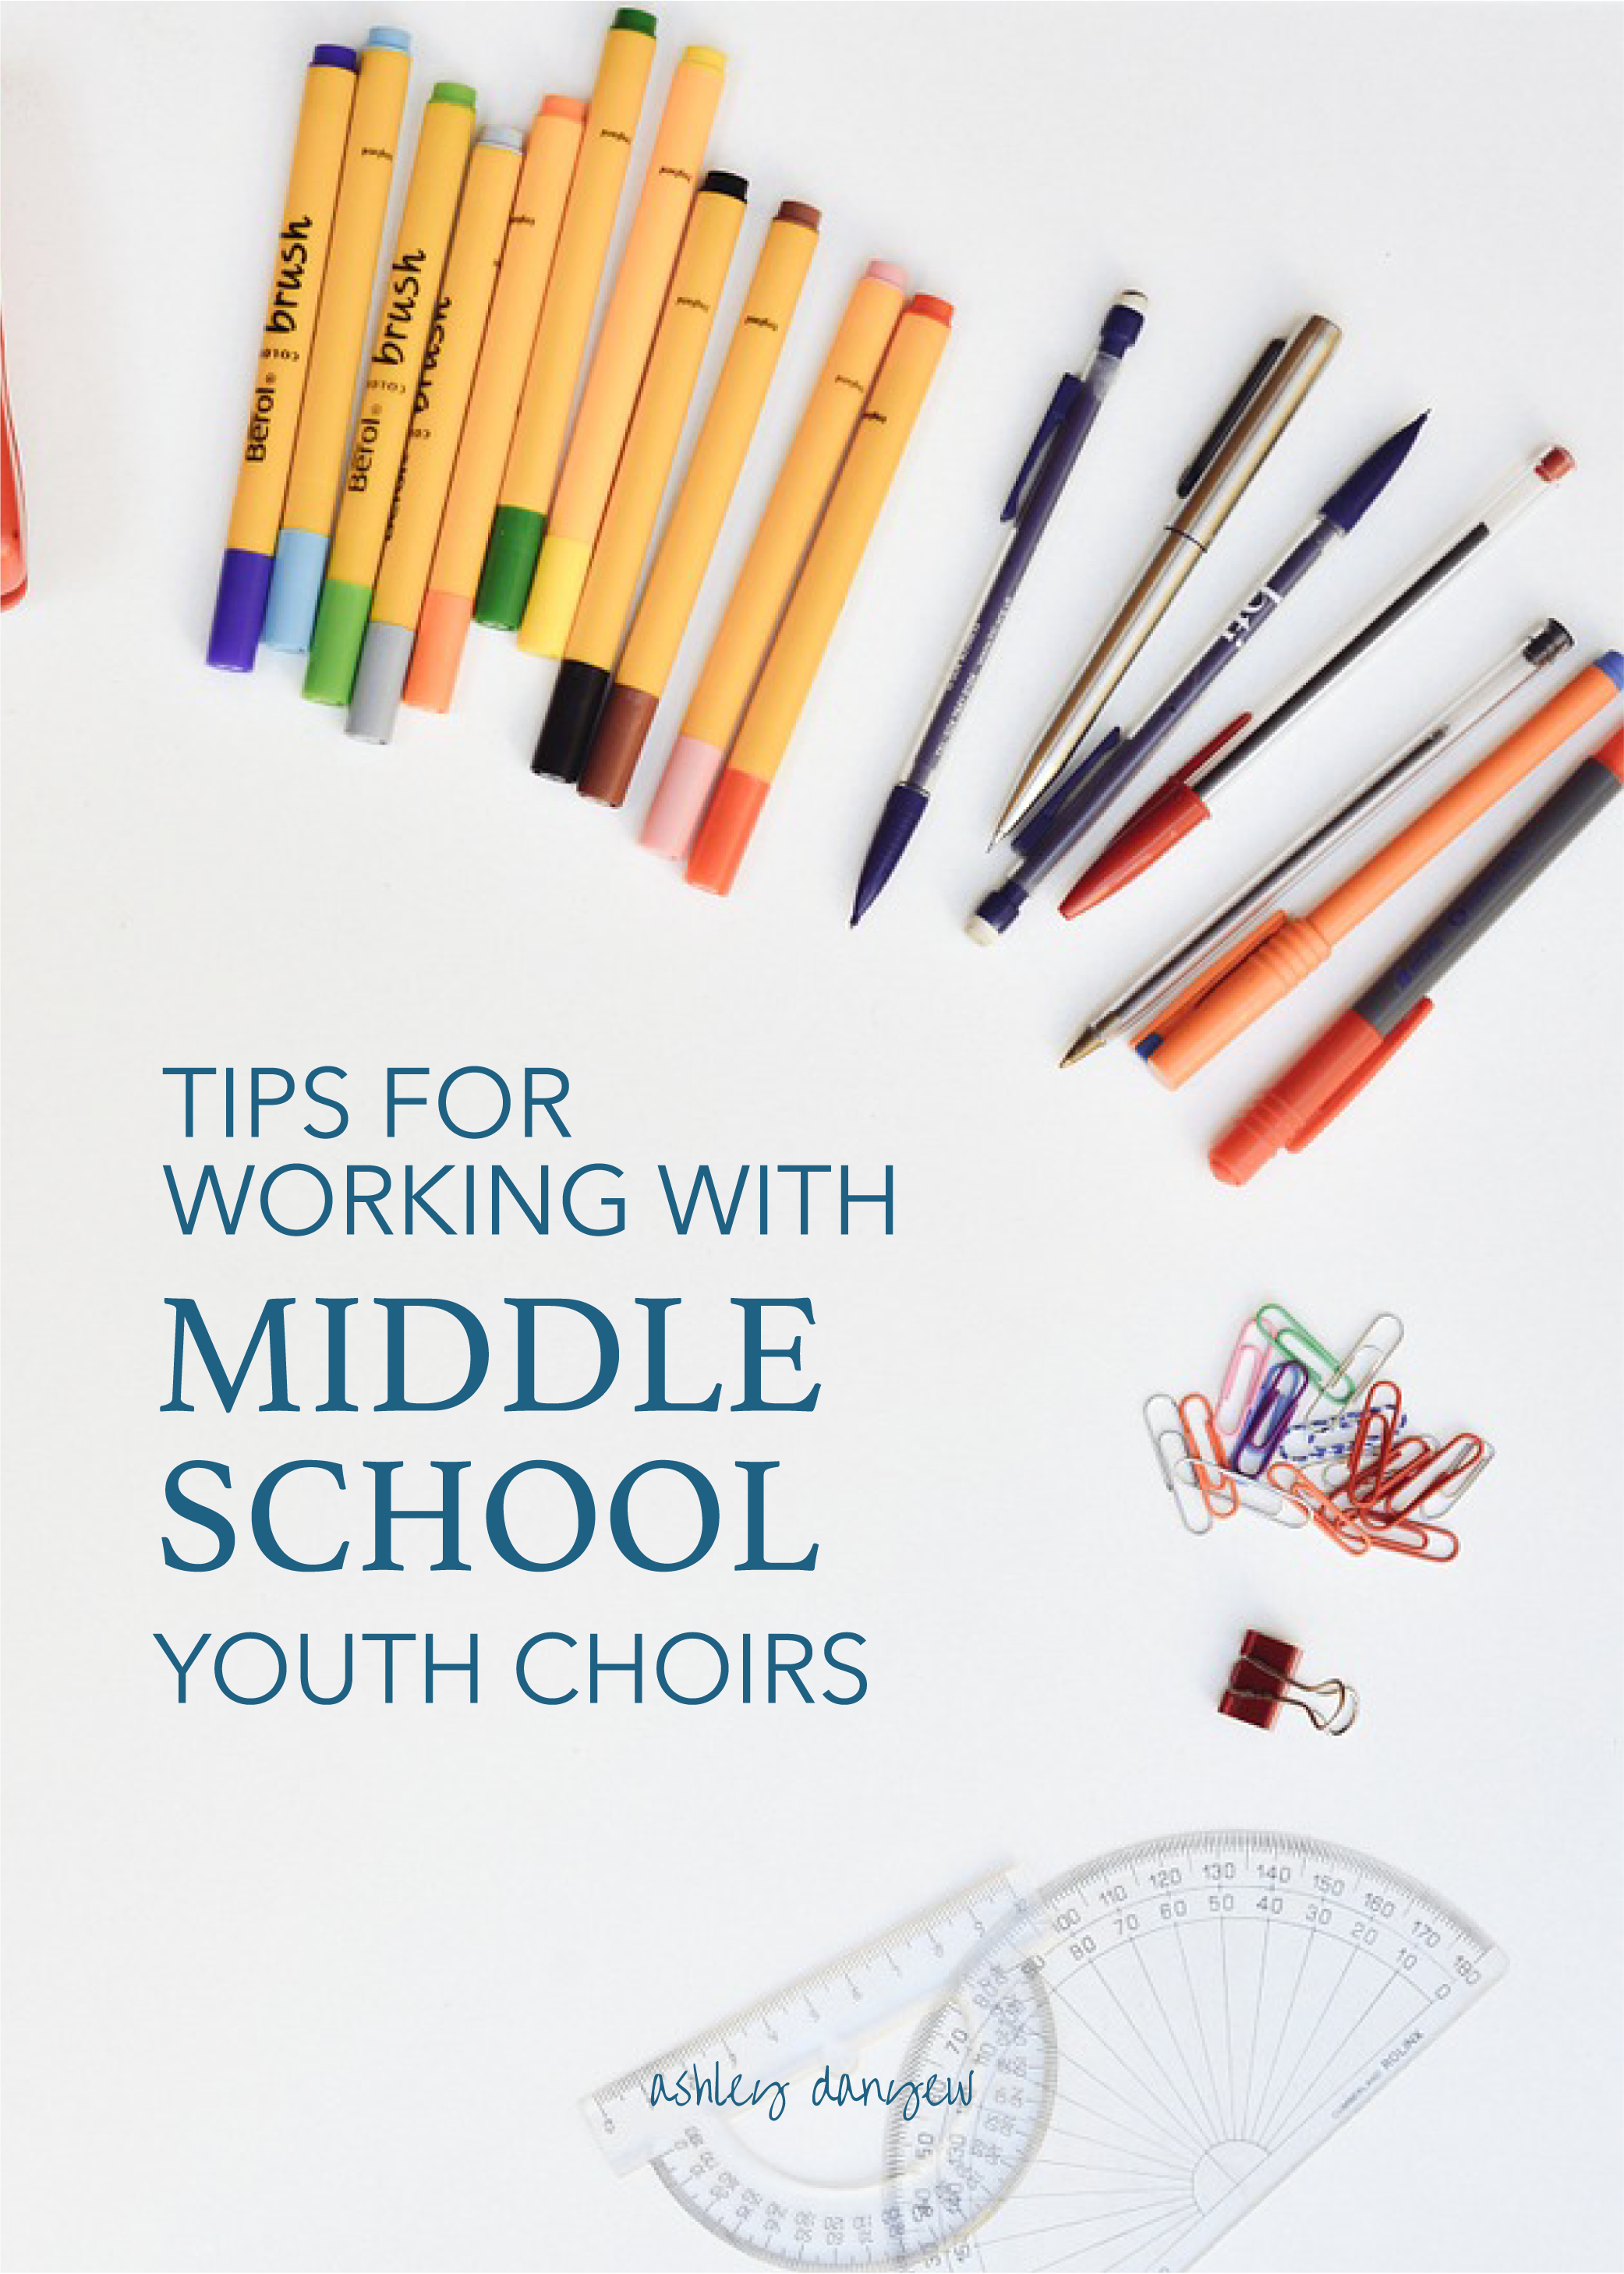 Tips For Working With Middle School Youth Choirs